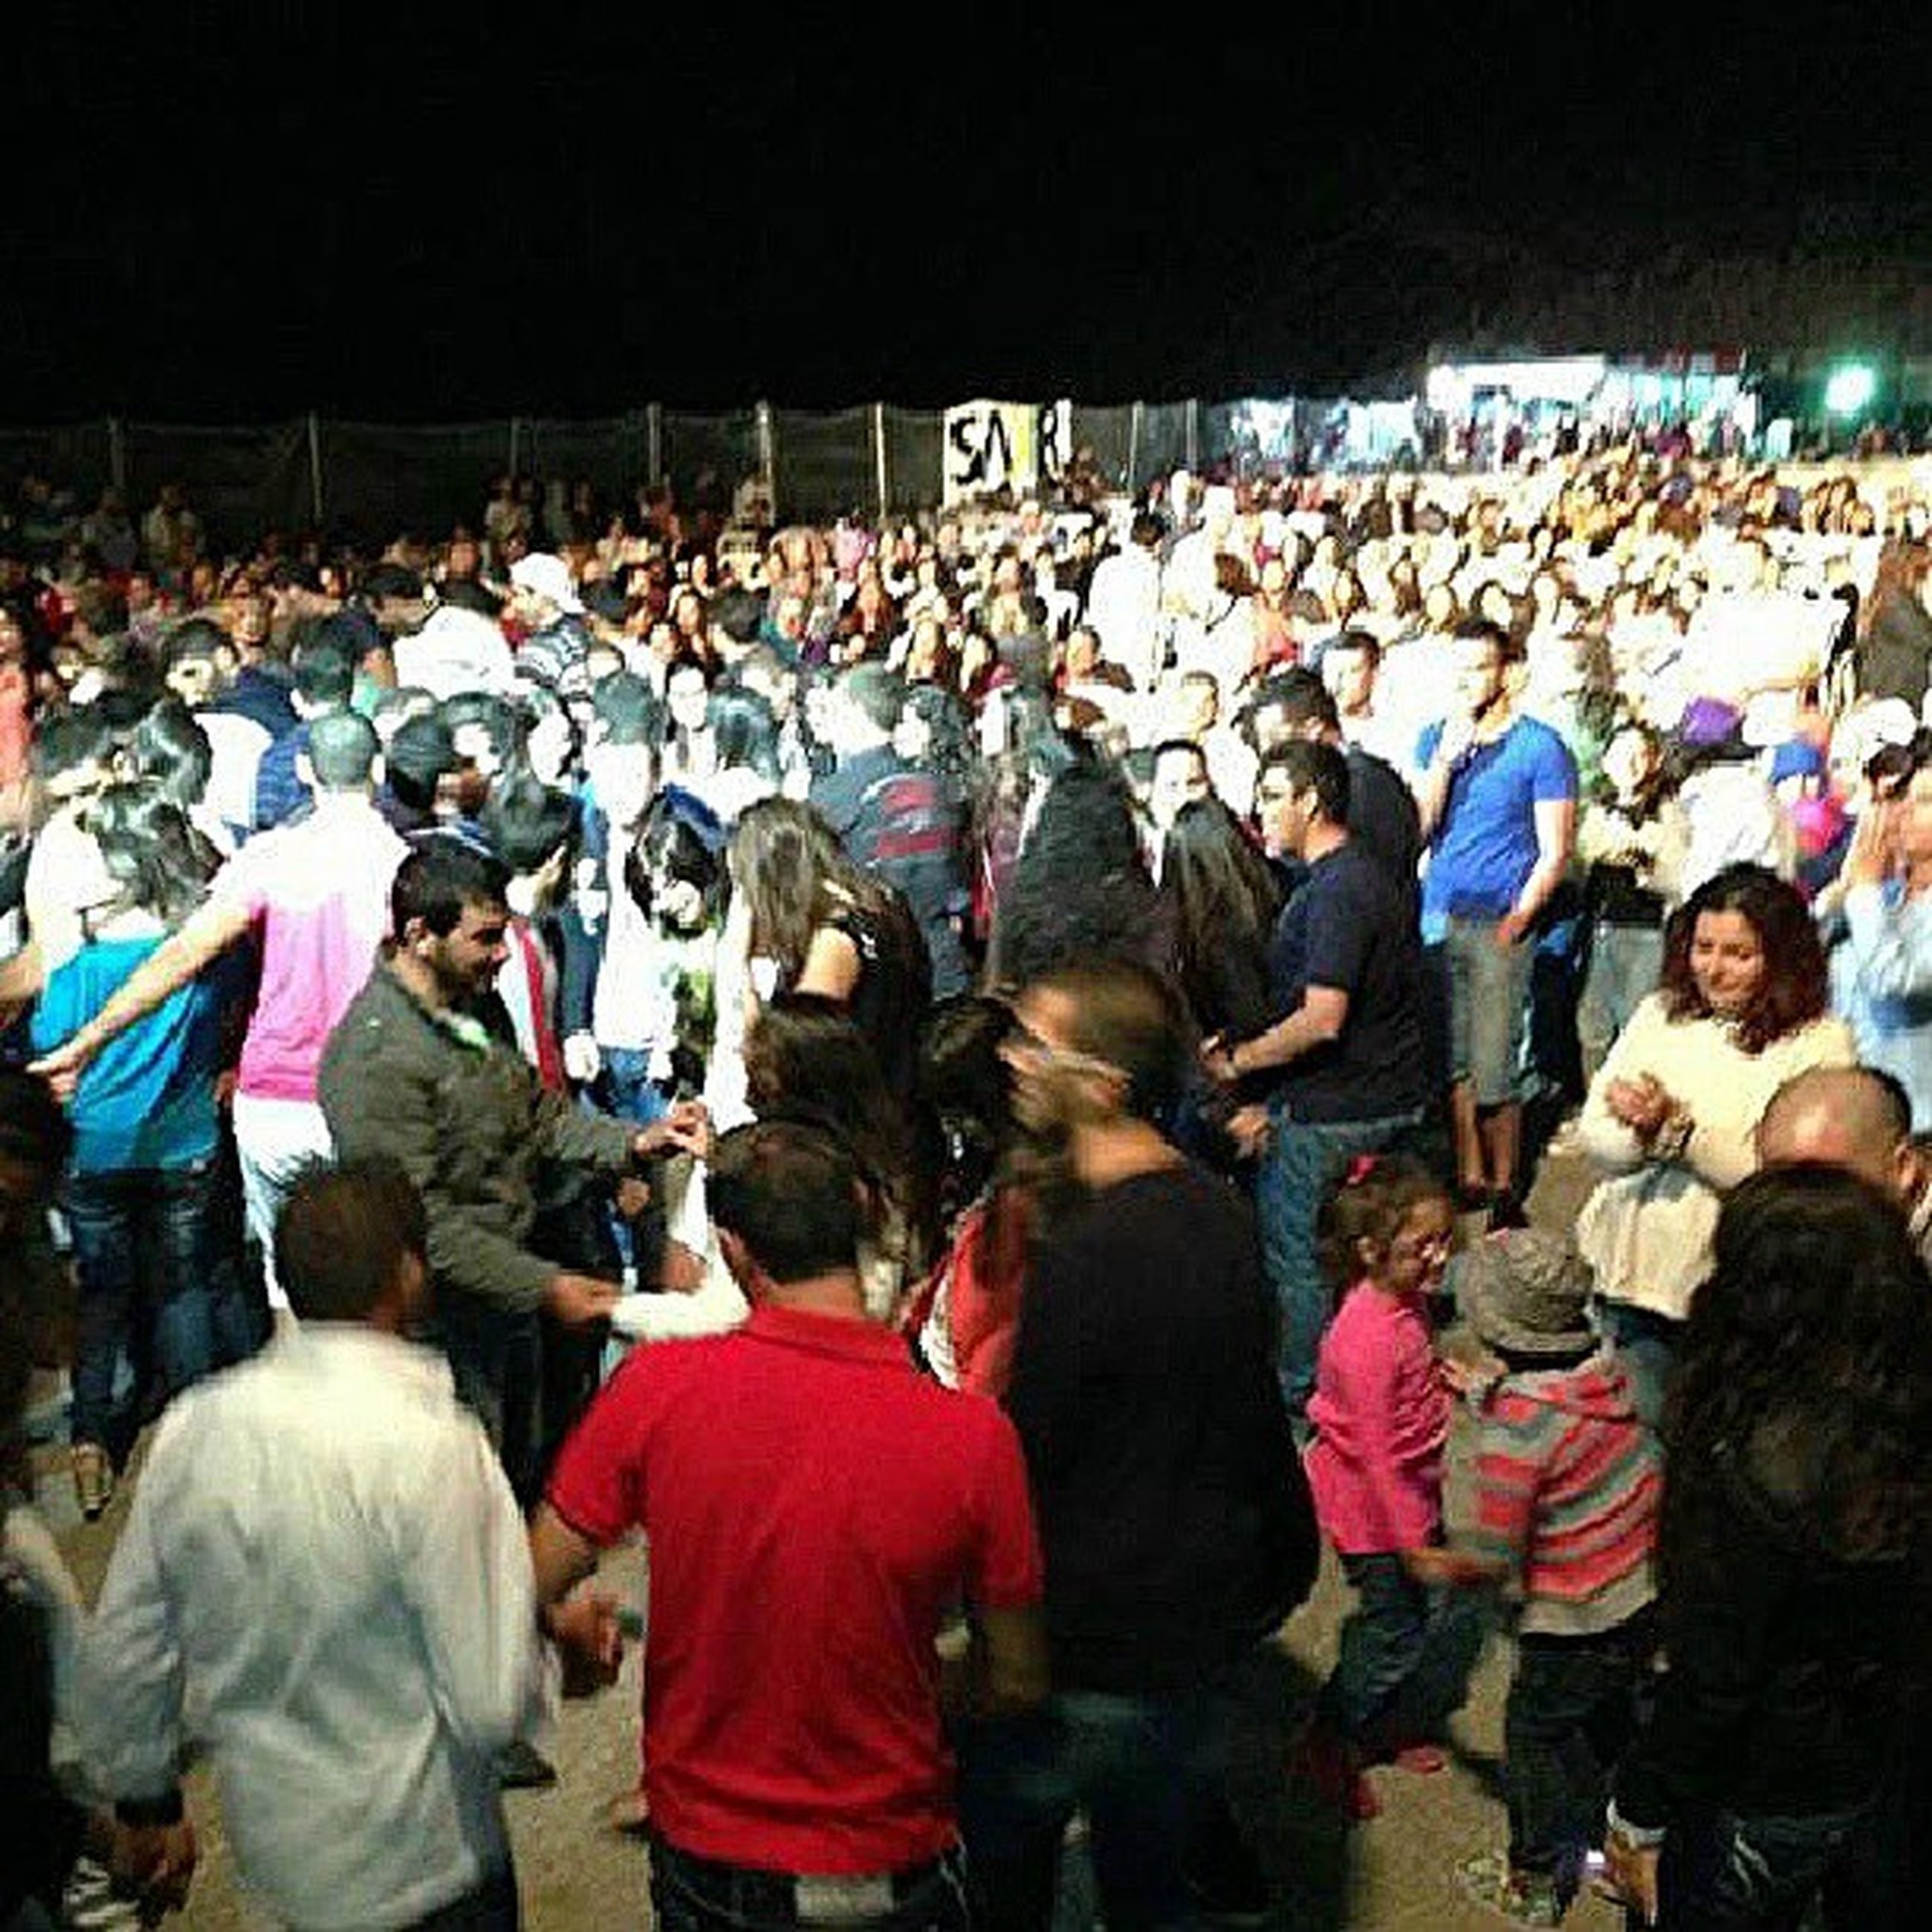 large group of people, crowd, lifestyles, men, person, spectator, leisure activity, enjoyment, togetherness, performance, arts culture and entertainment, event, fun, celebration, casual clothing, music, mixed age range, illuminated